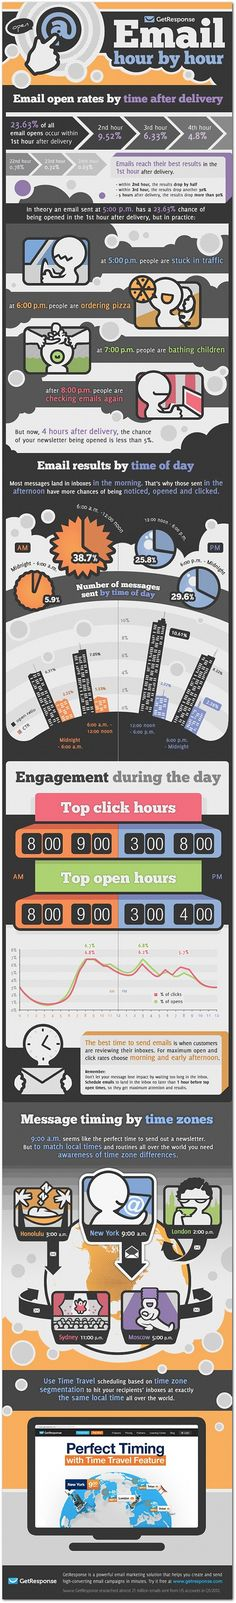 The Best and Worst Times to Send an Email #Infographic